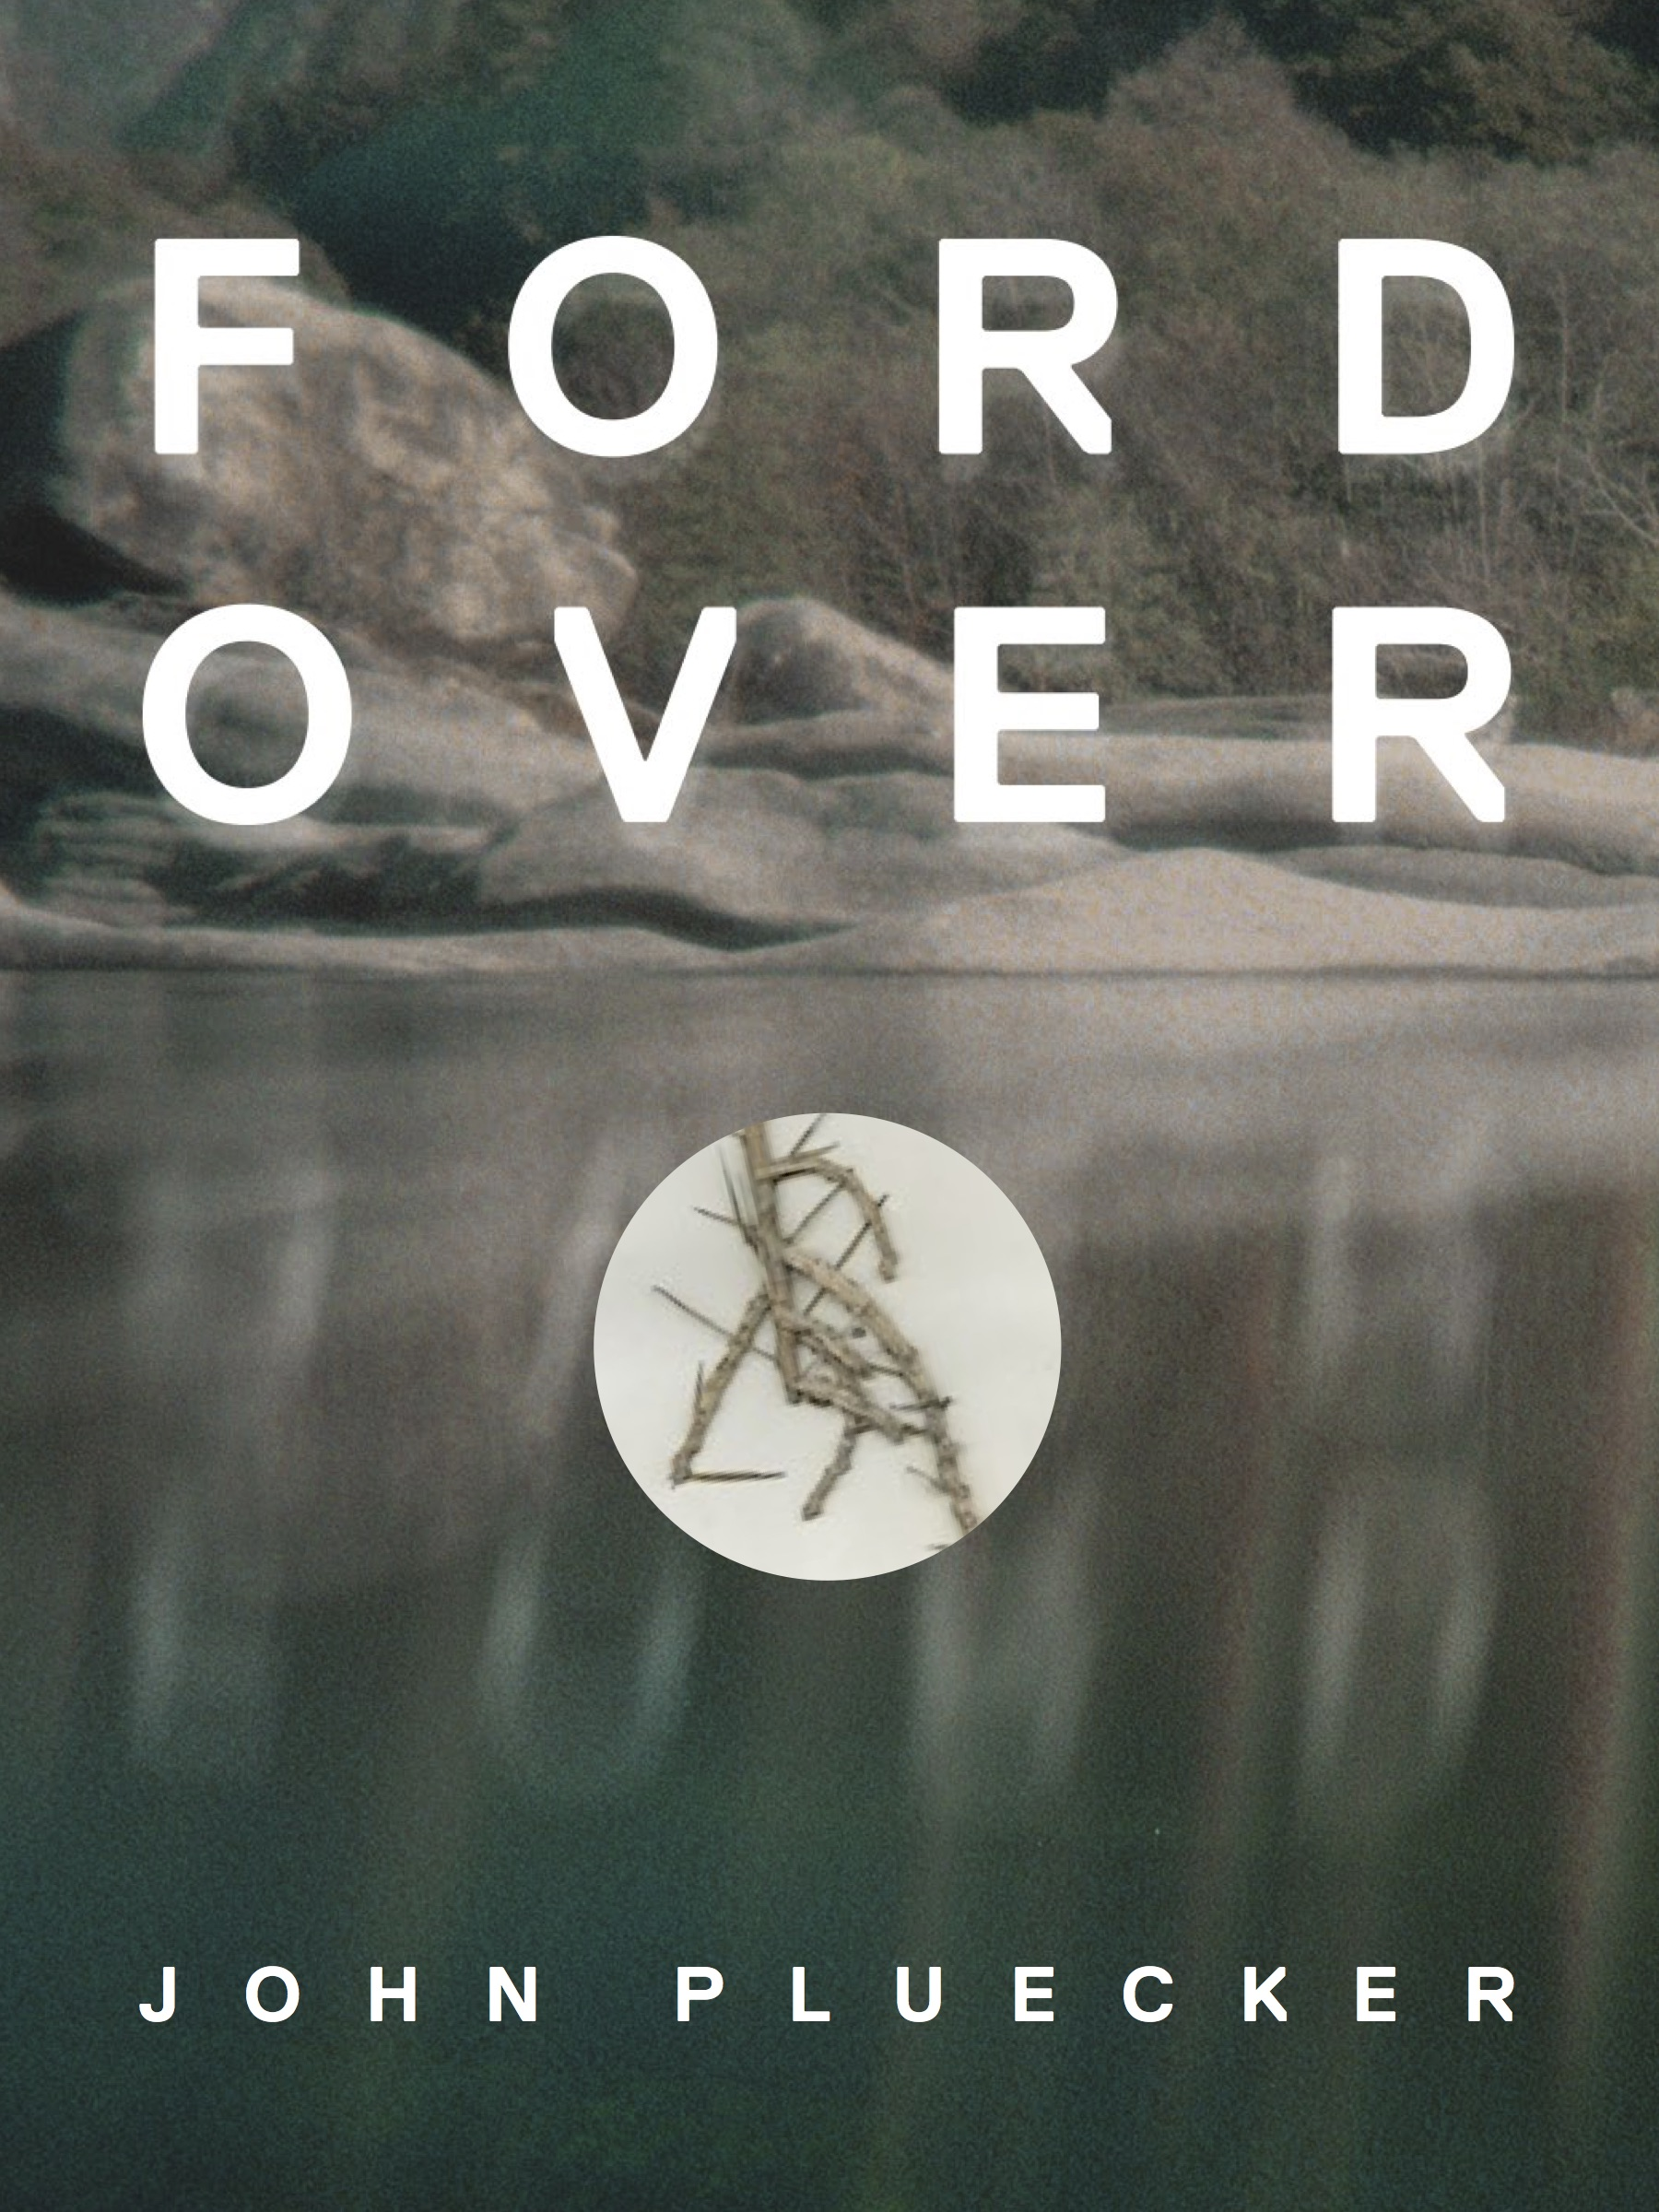 Ford Over by John Pluecker